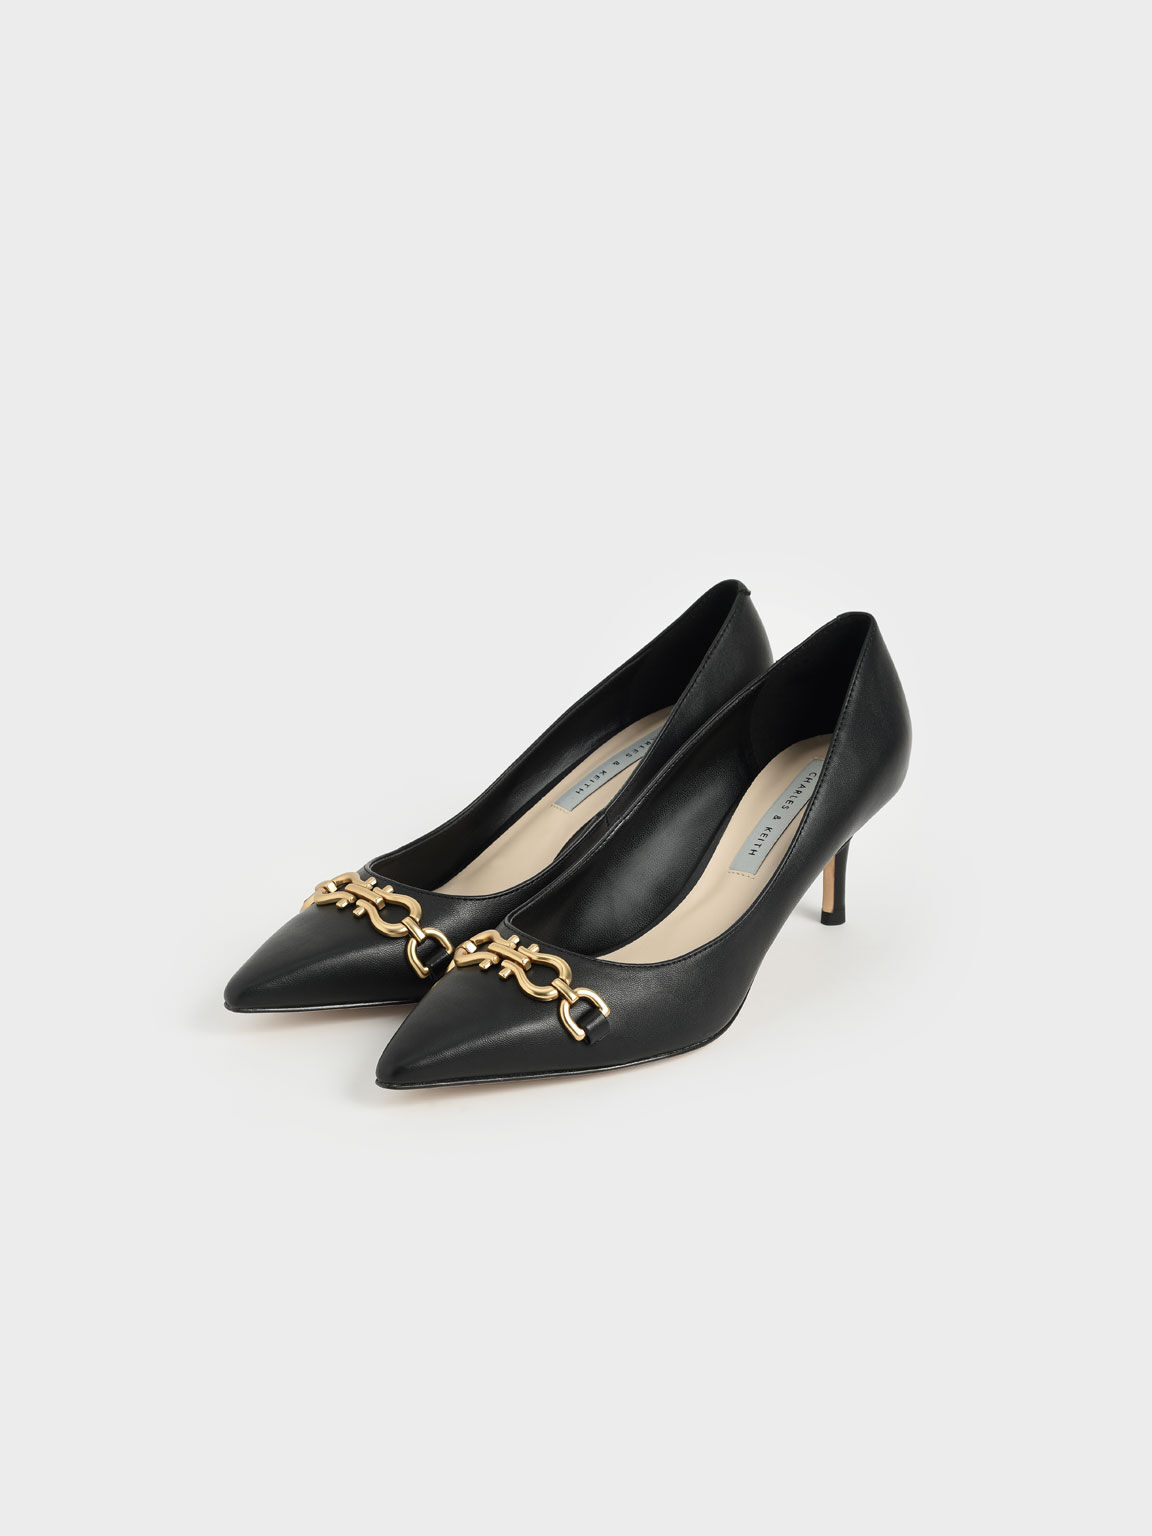 Chain Link Pointed Toe Pumps, Black, hi-res